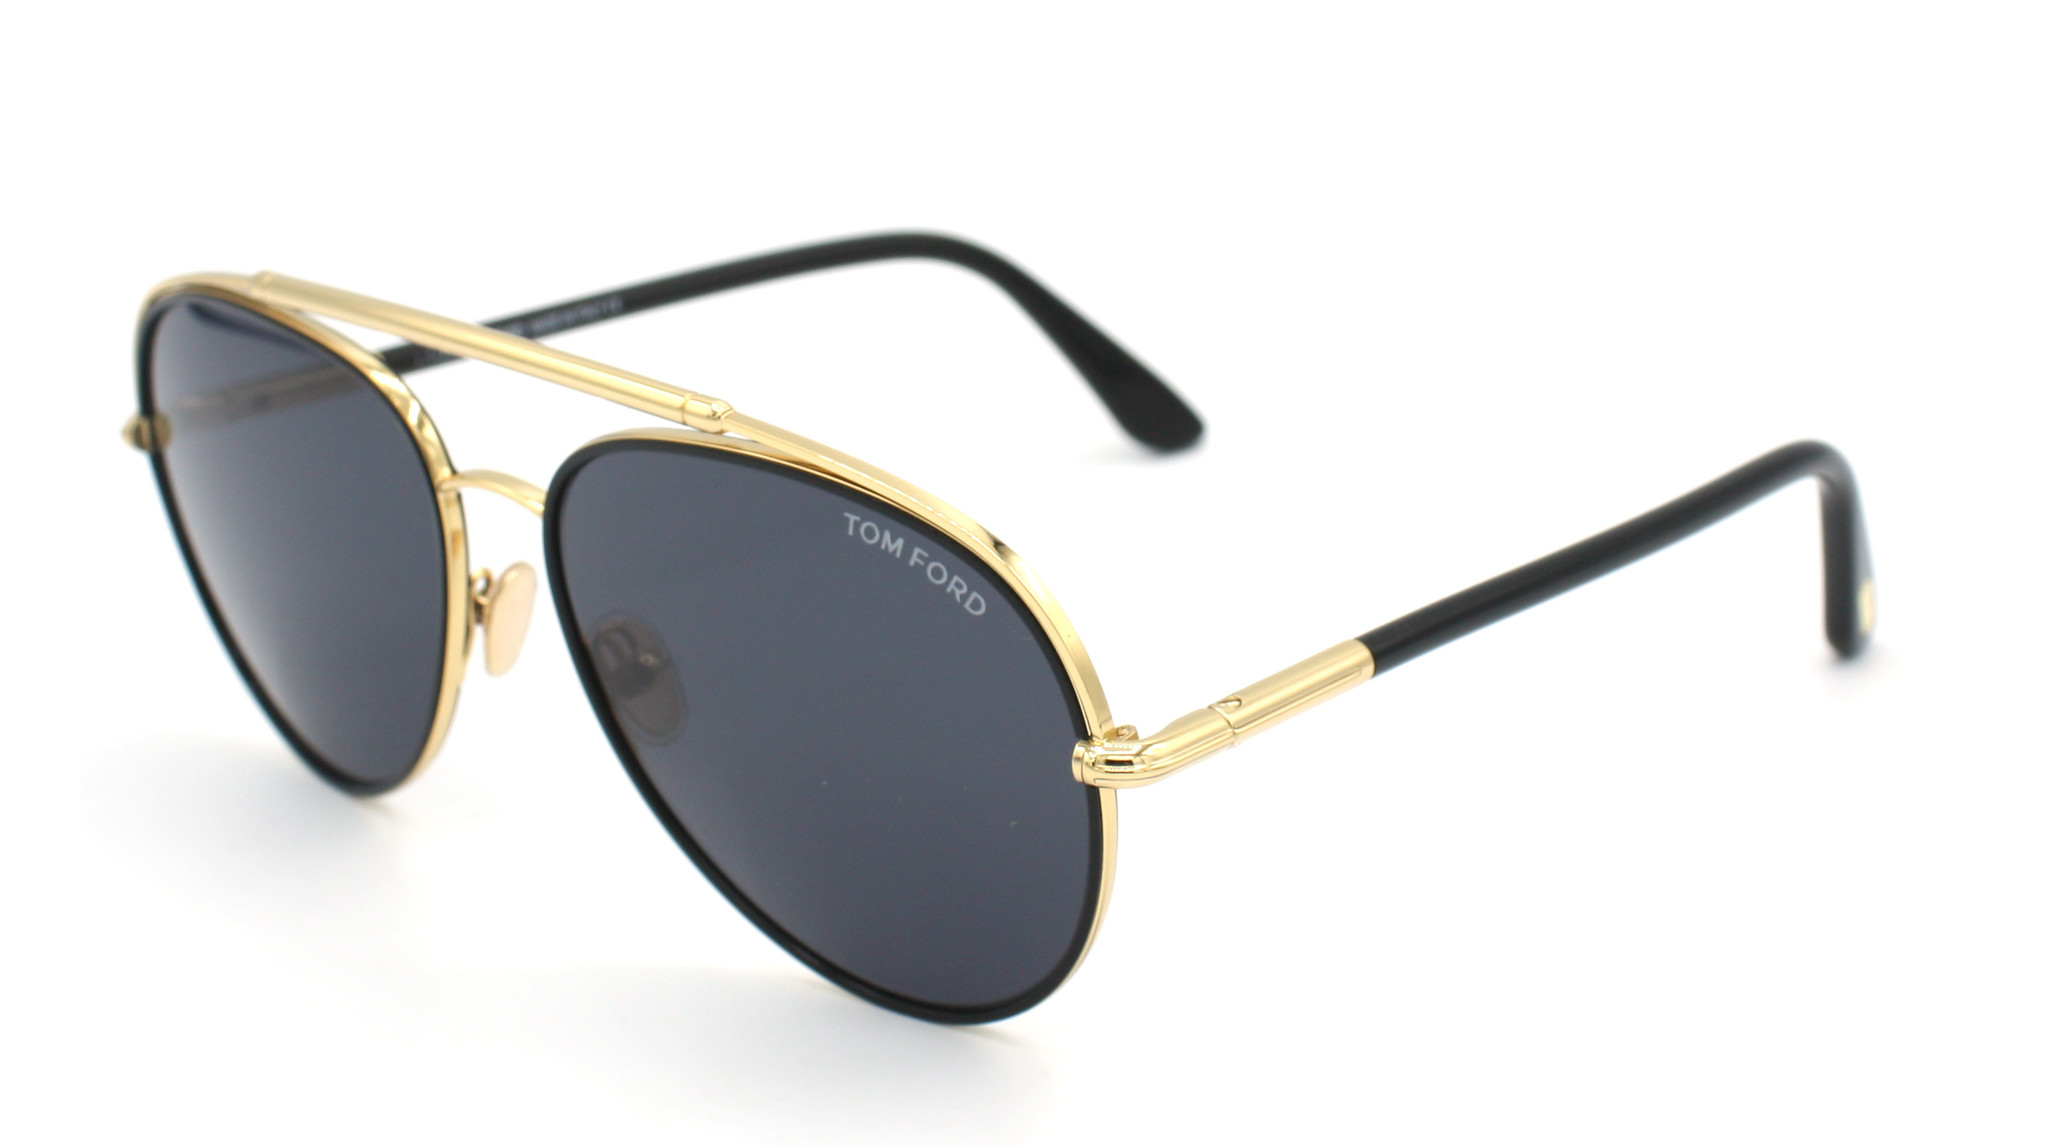 Tom Ford - TF0748/S - 01A-2